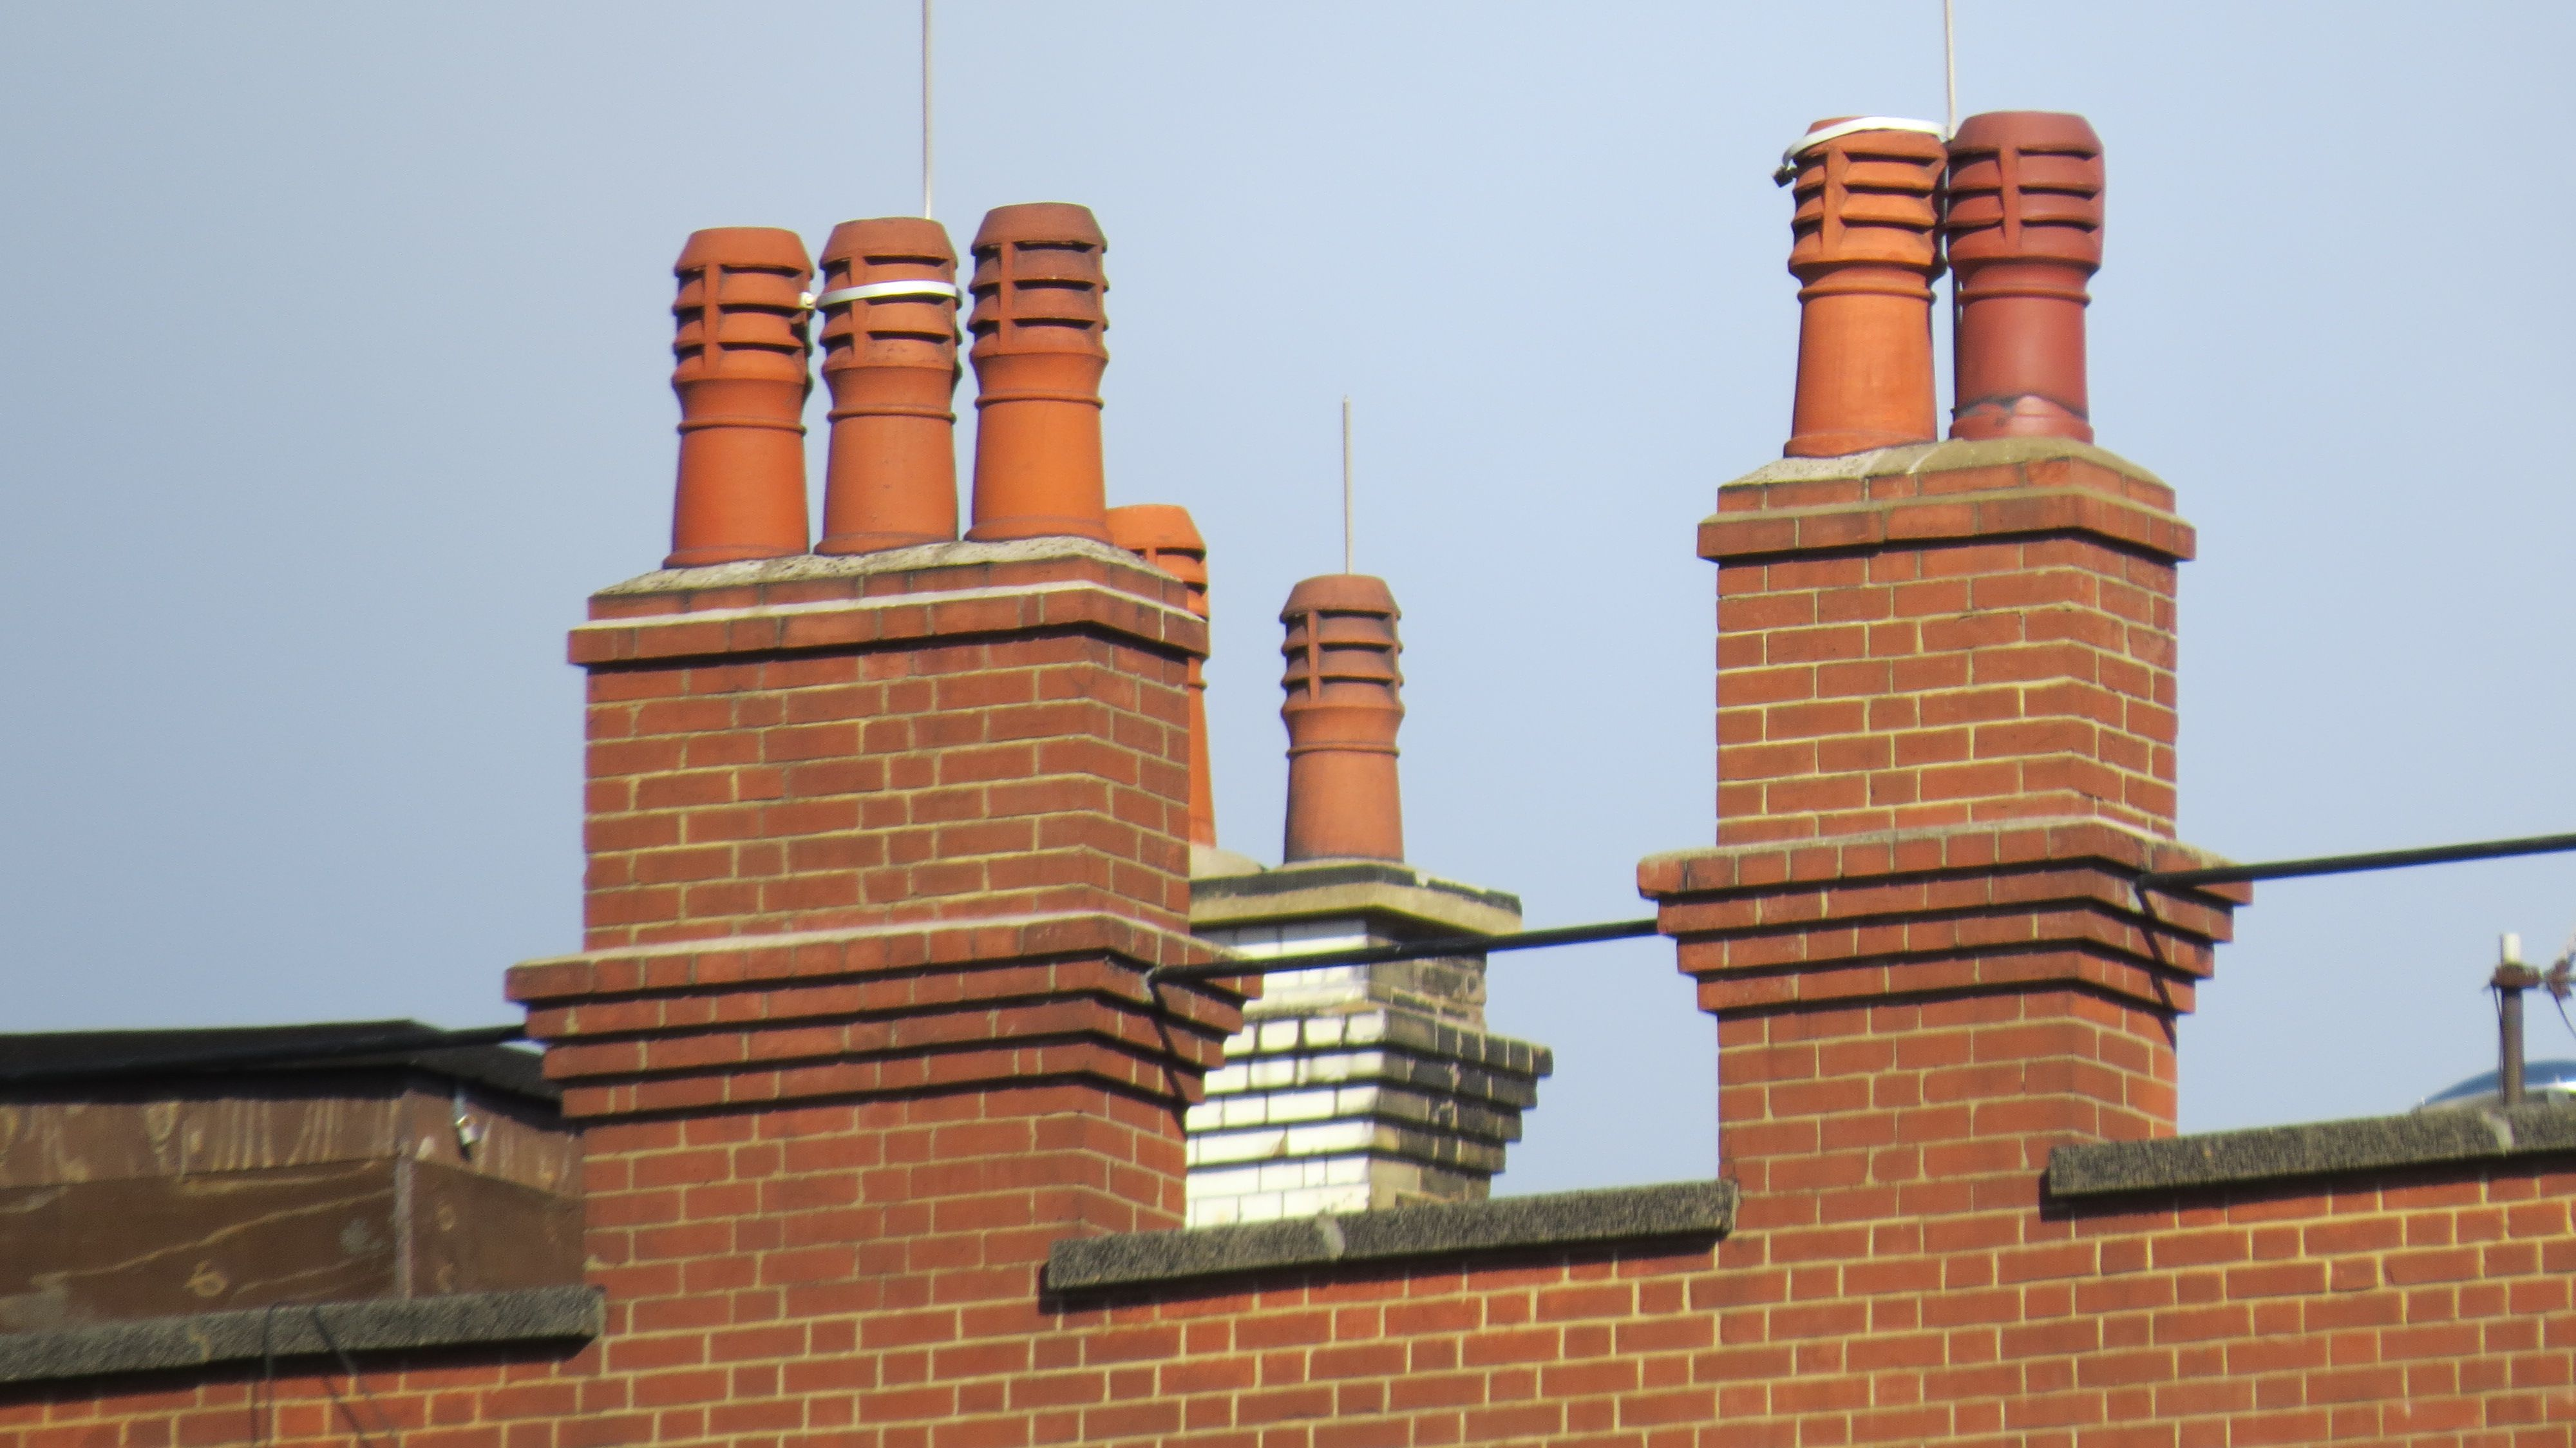 A Medley Of Terracotta Chimney Pots Dons Rooftops In Downtown London Pipes For Sale Chimney Cap Clay